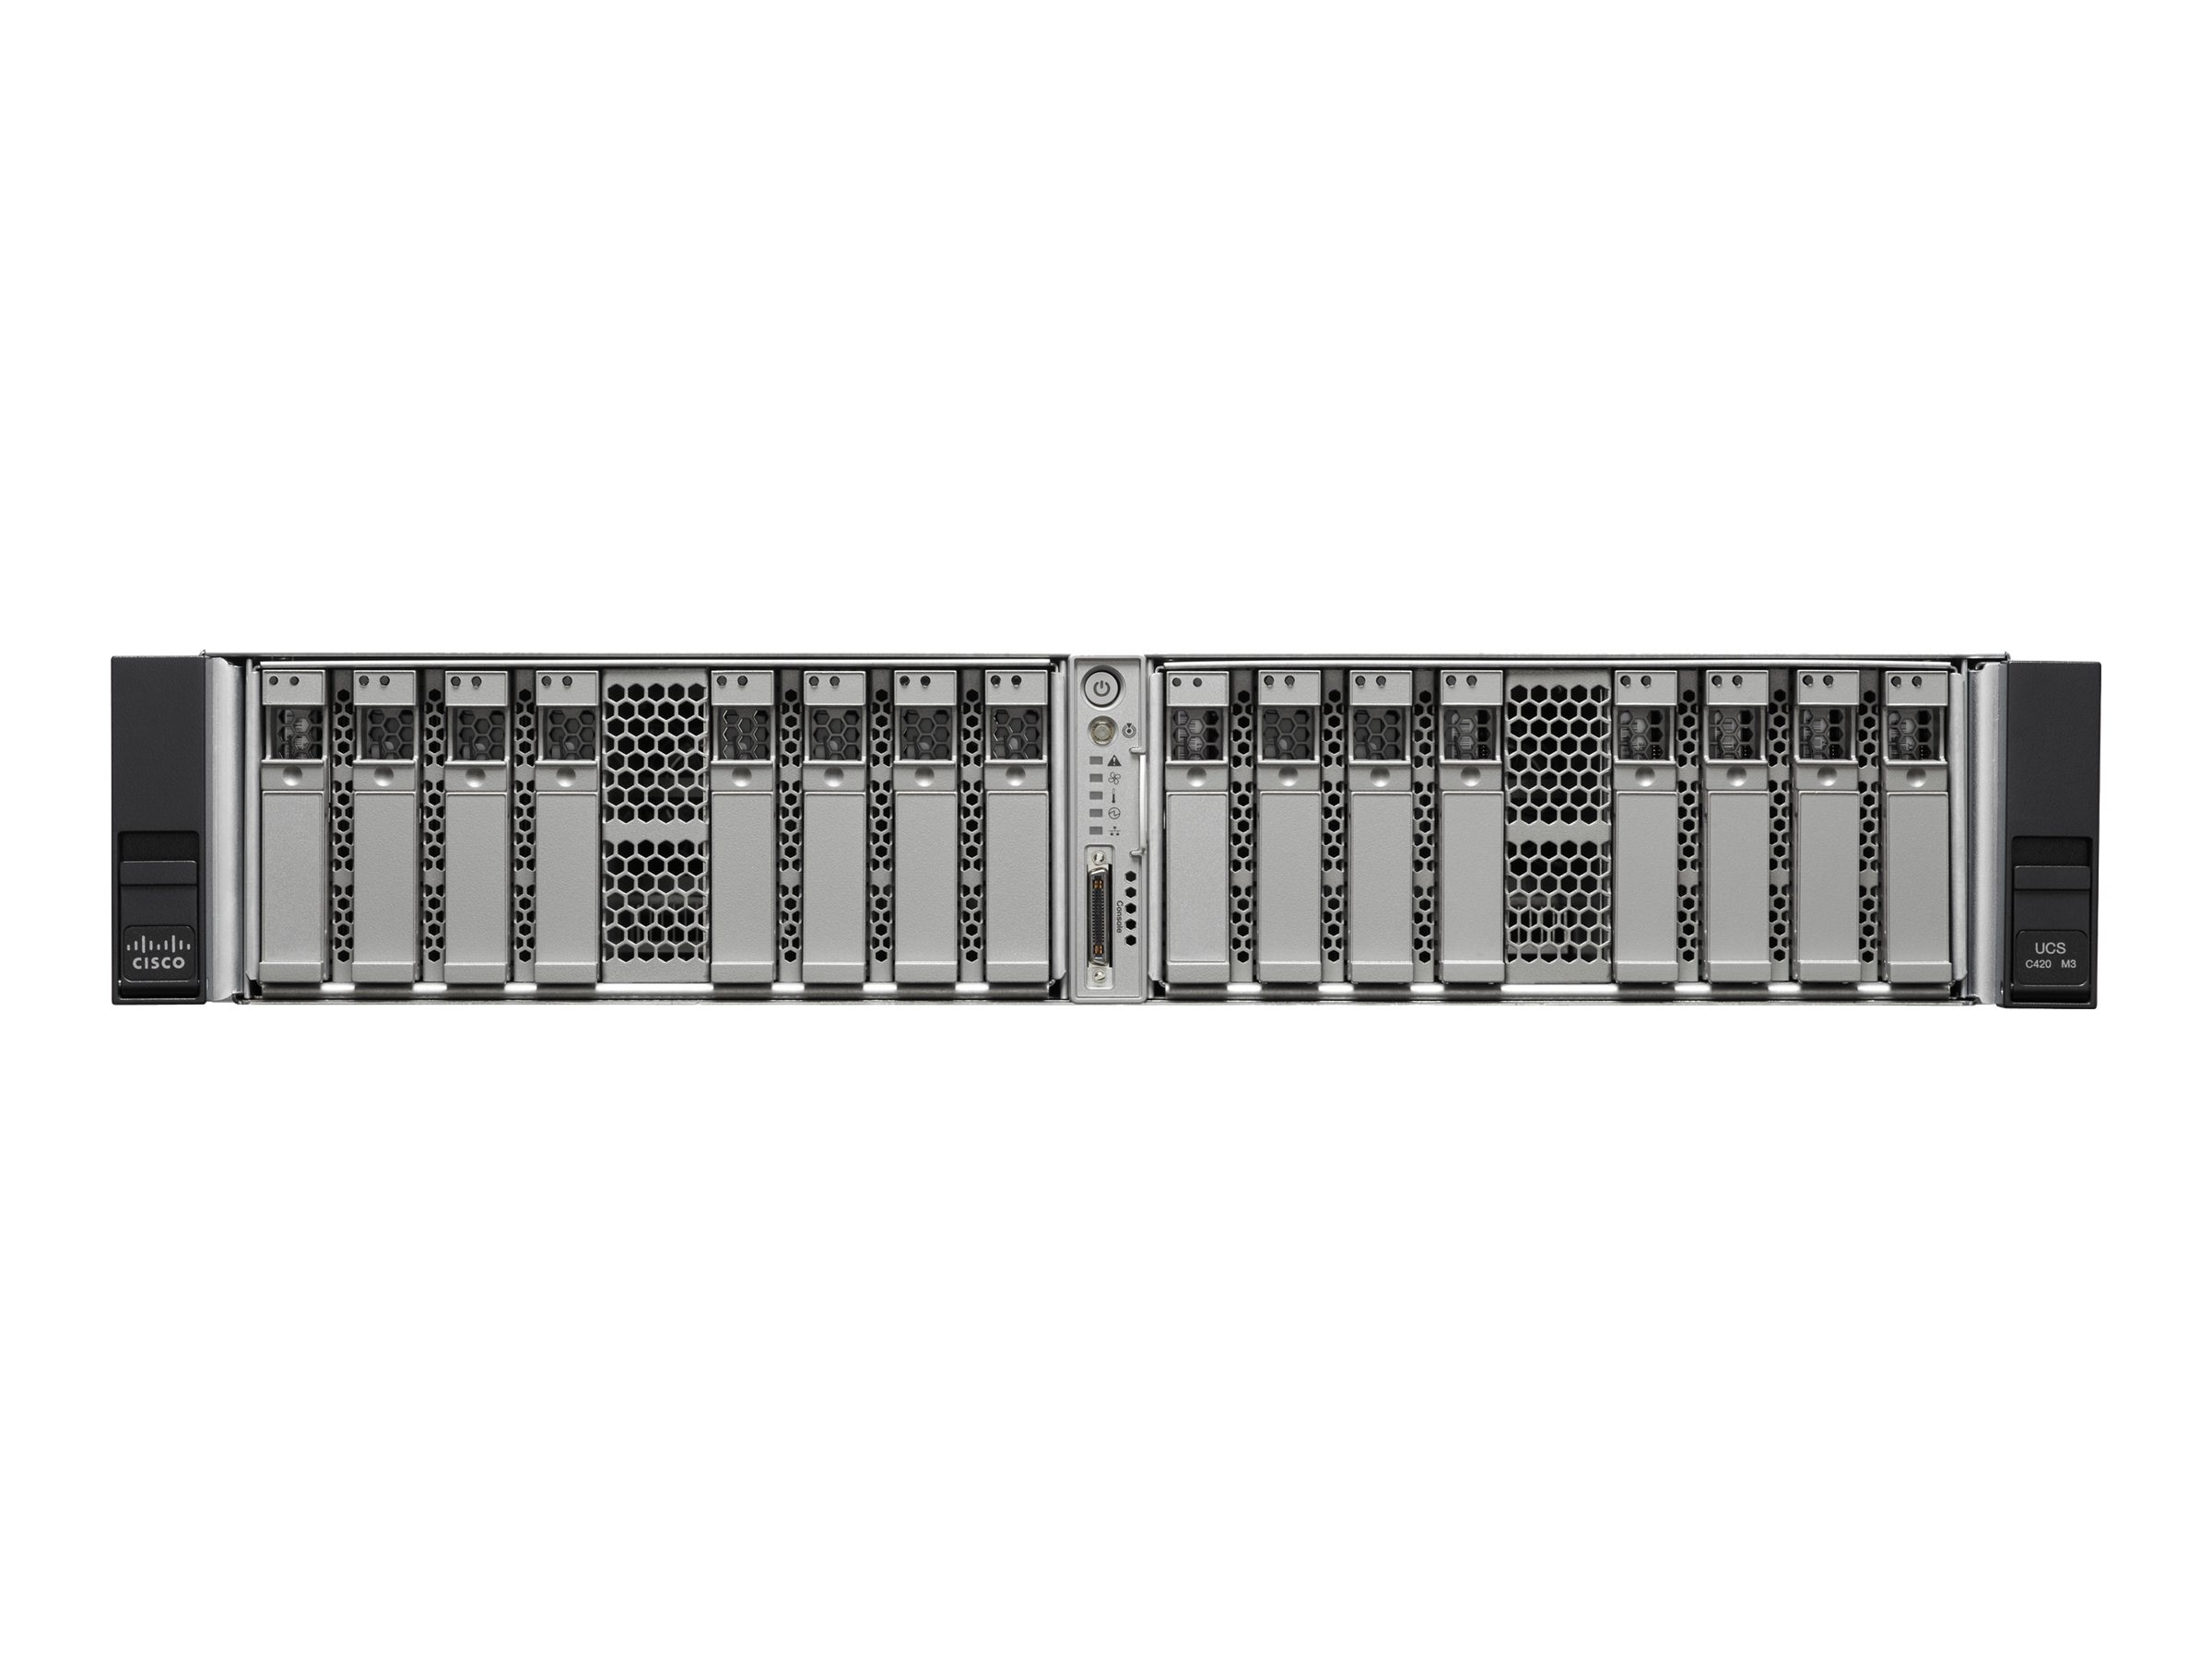 Cisco UCSC-C420-M3 Image 1